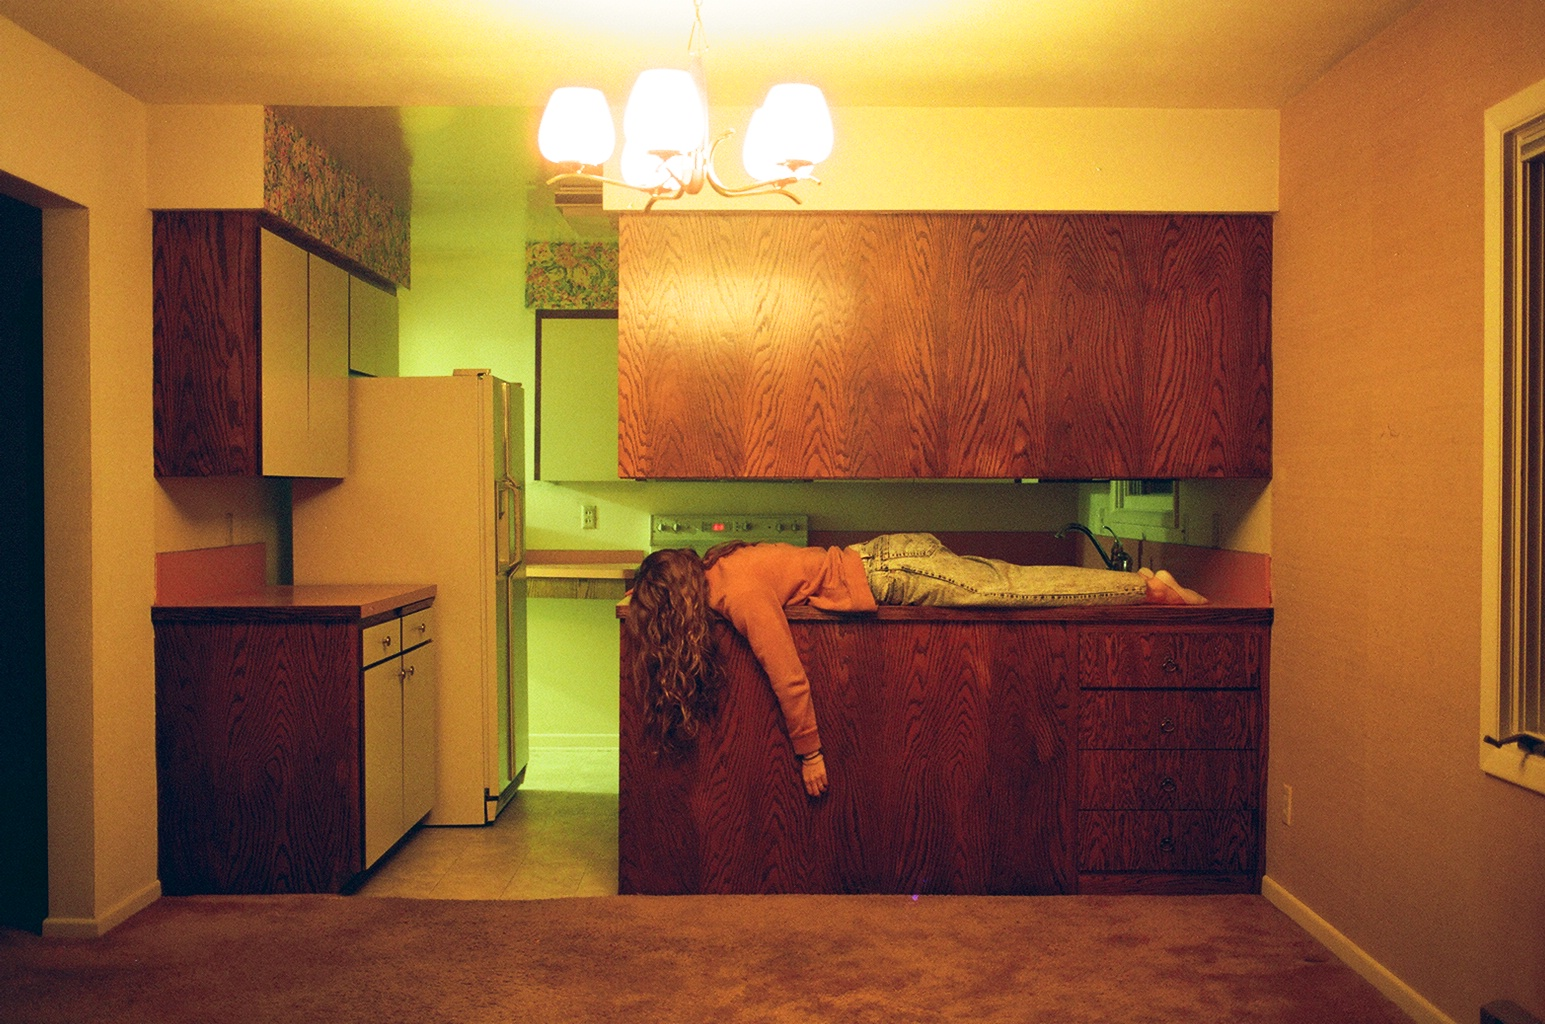 the kitchen i learned to cook in 35mm self portrait emily berkey.jpg